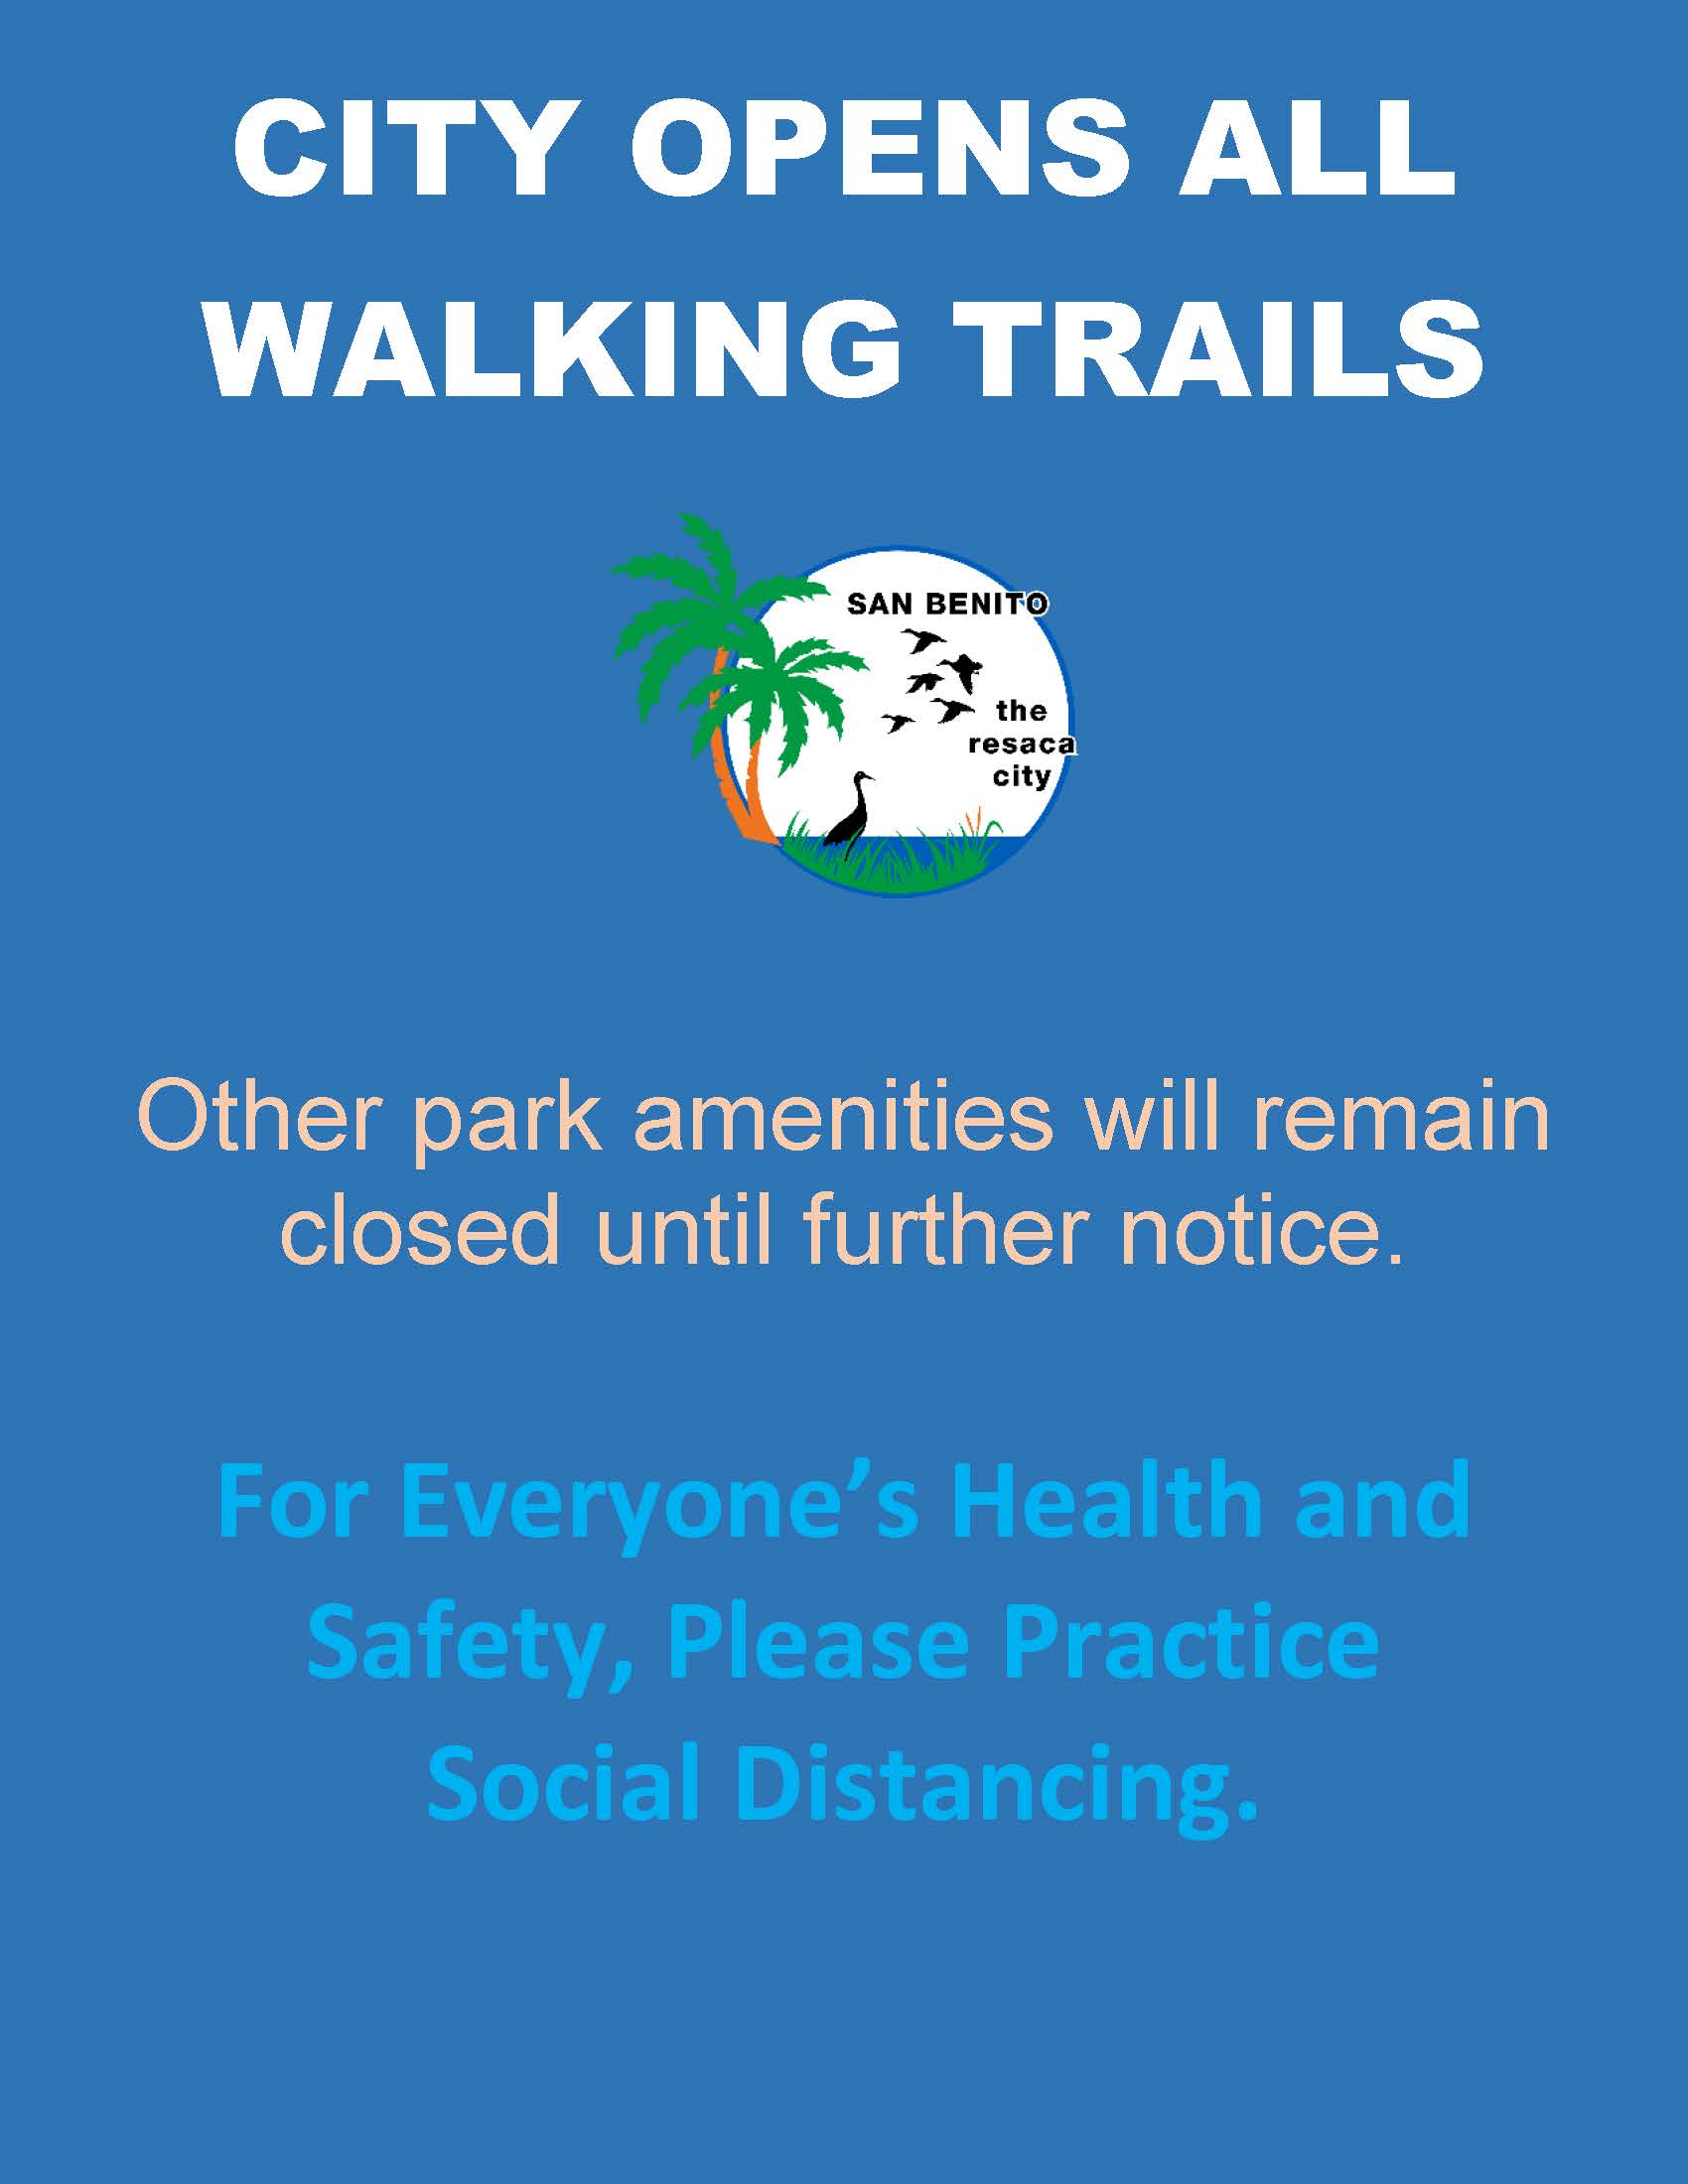 CITY OPENS all walking trails